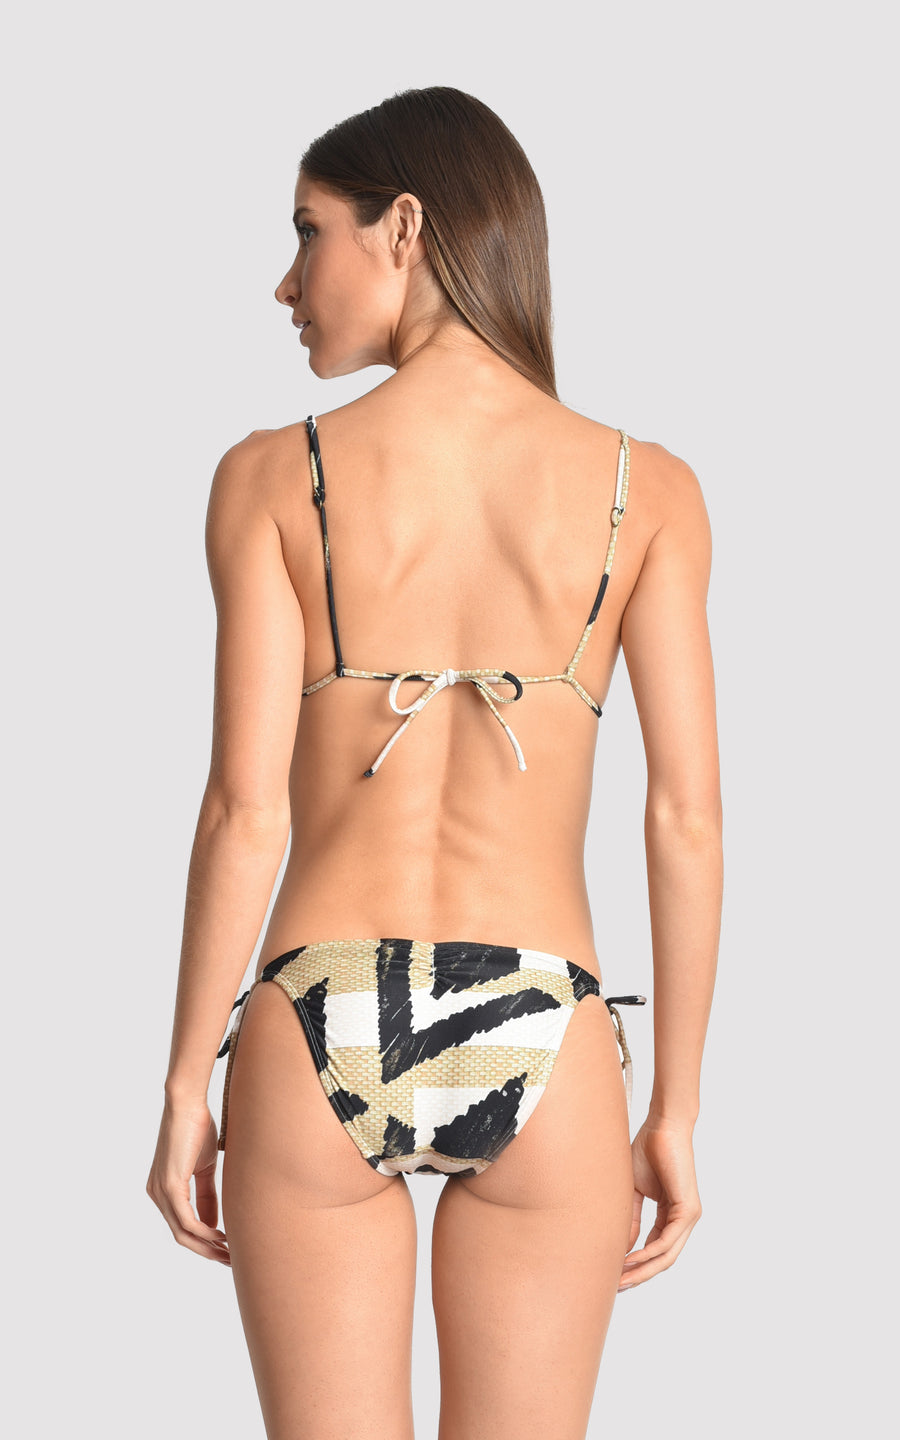 Straw Bikini String Top and Bottom